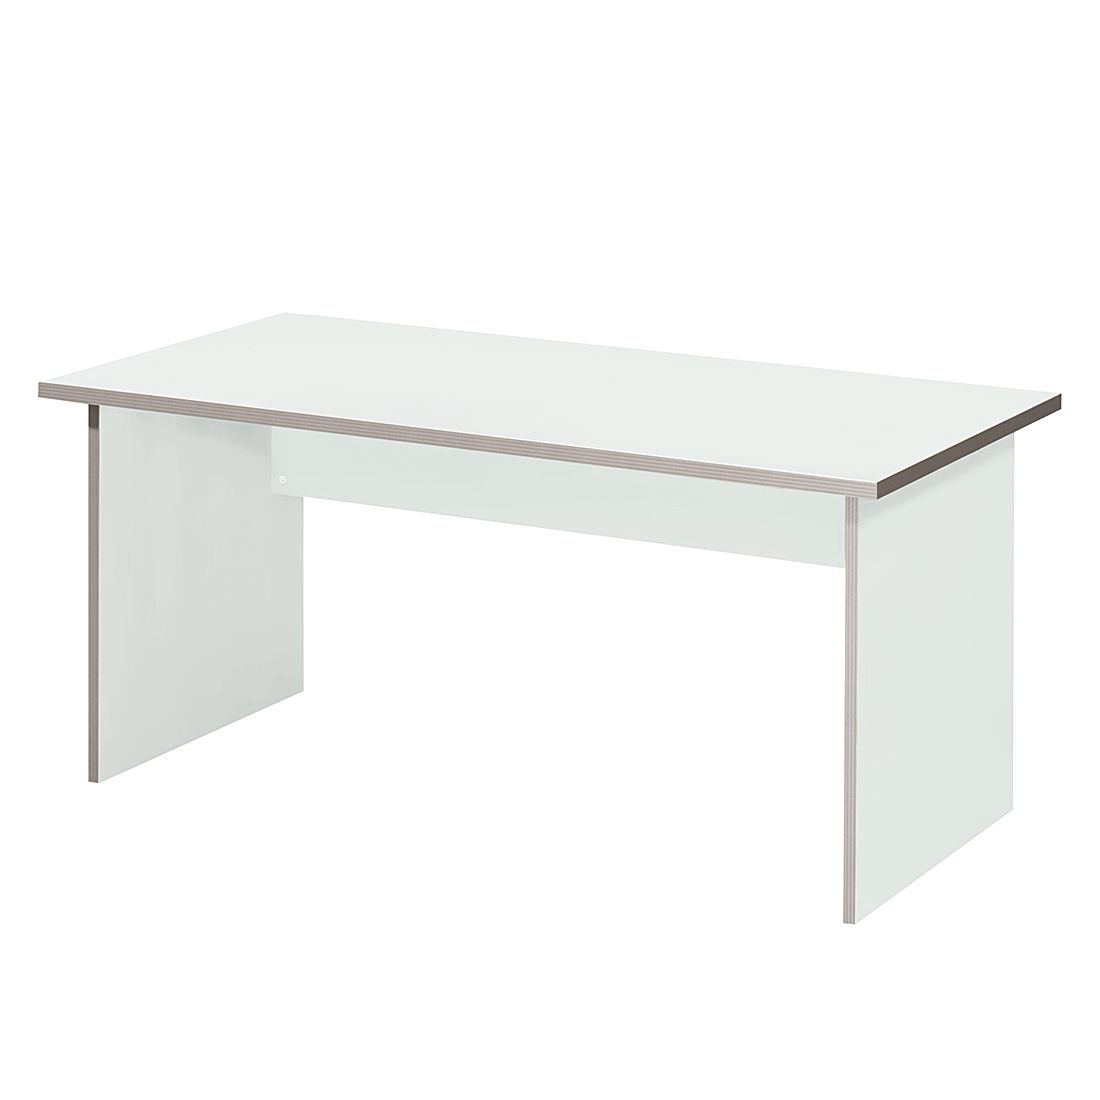 Table de bureau Kirk volts - Gris clair - Plateau de table : 80 x 80 cm, Wellemöbel